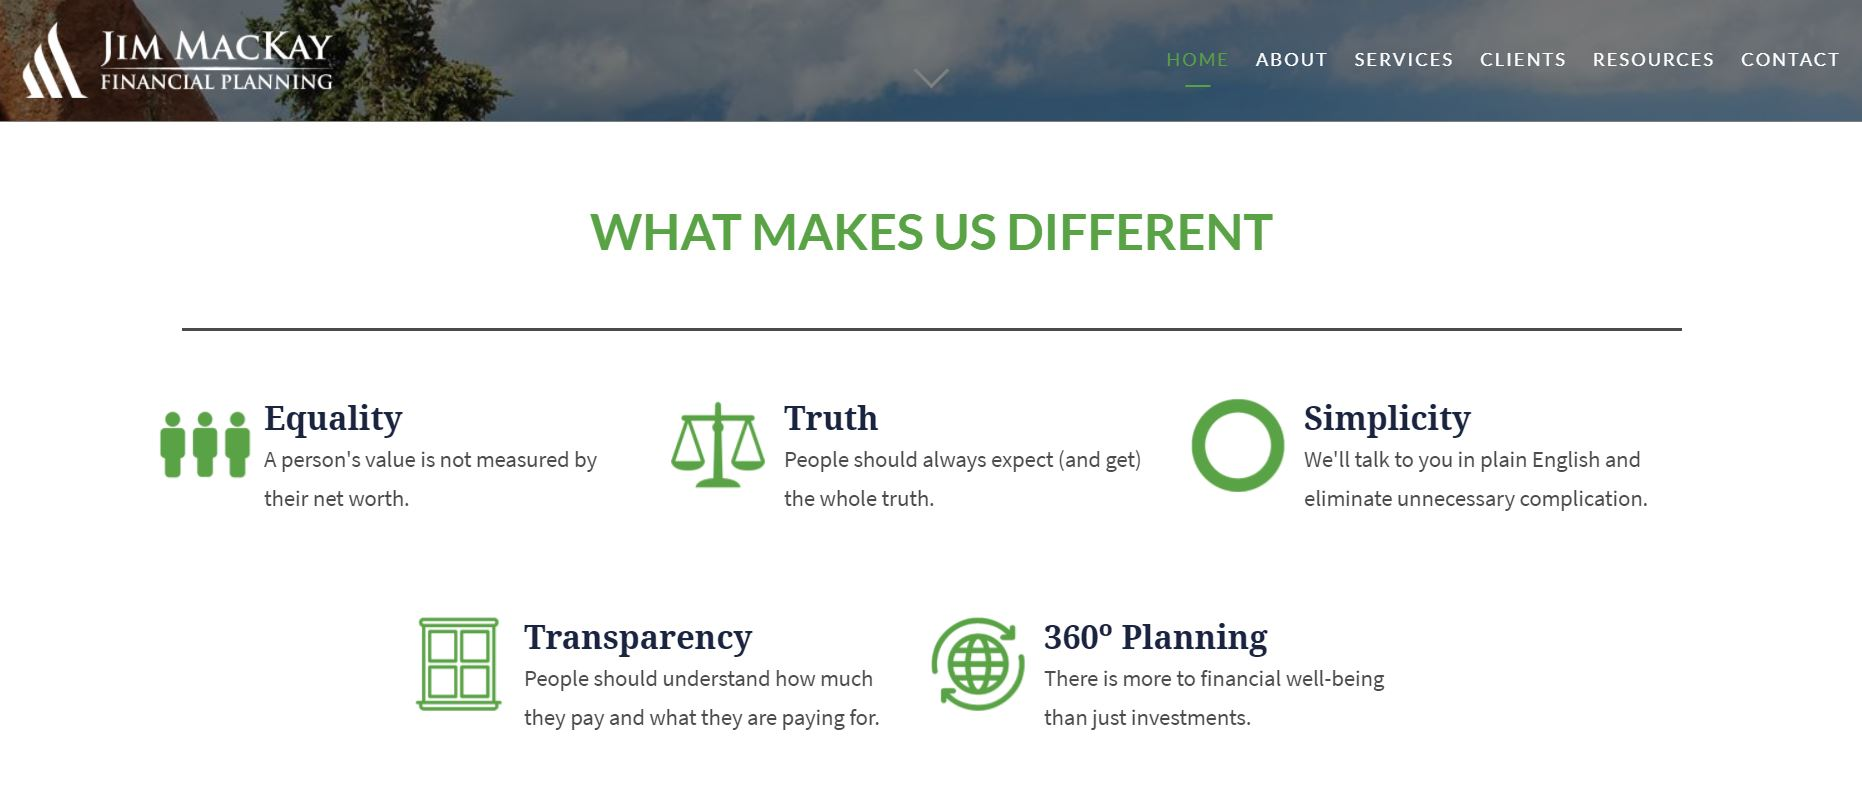 Jim MacKay Financial Planning's Website Copy